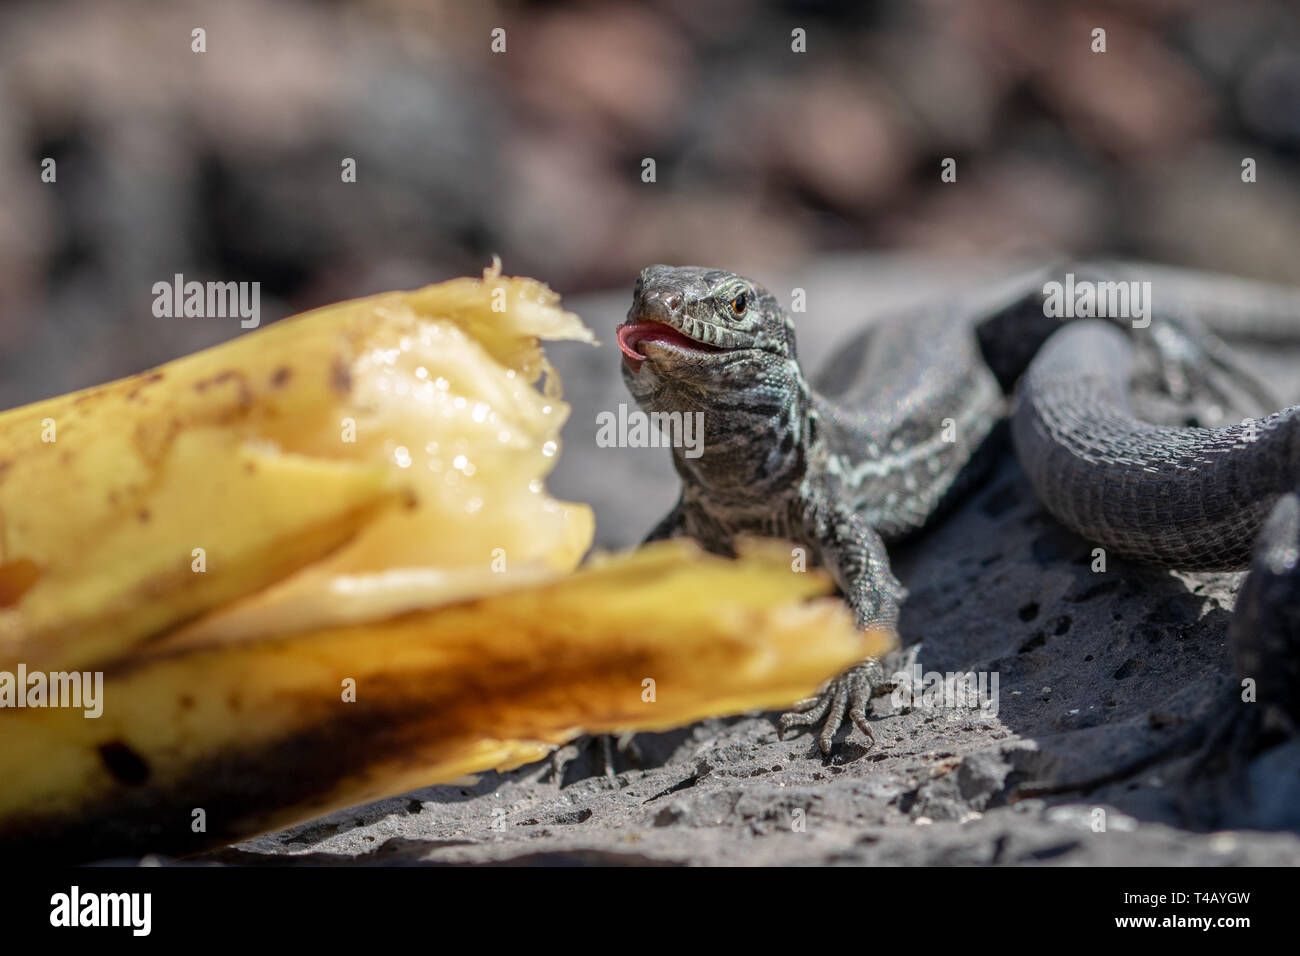 Wall lizard (gallotia galloti palmae) with a curling tongue eating a discarded banana with volcanic landscape rock in the background. La Palma Island, Stock Photo